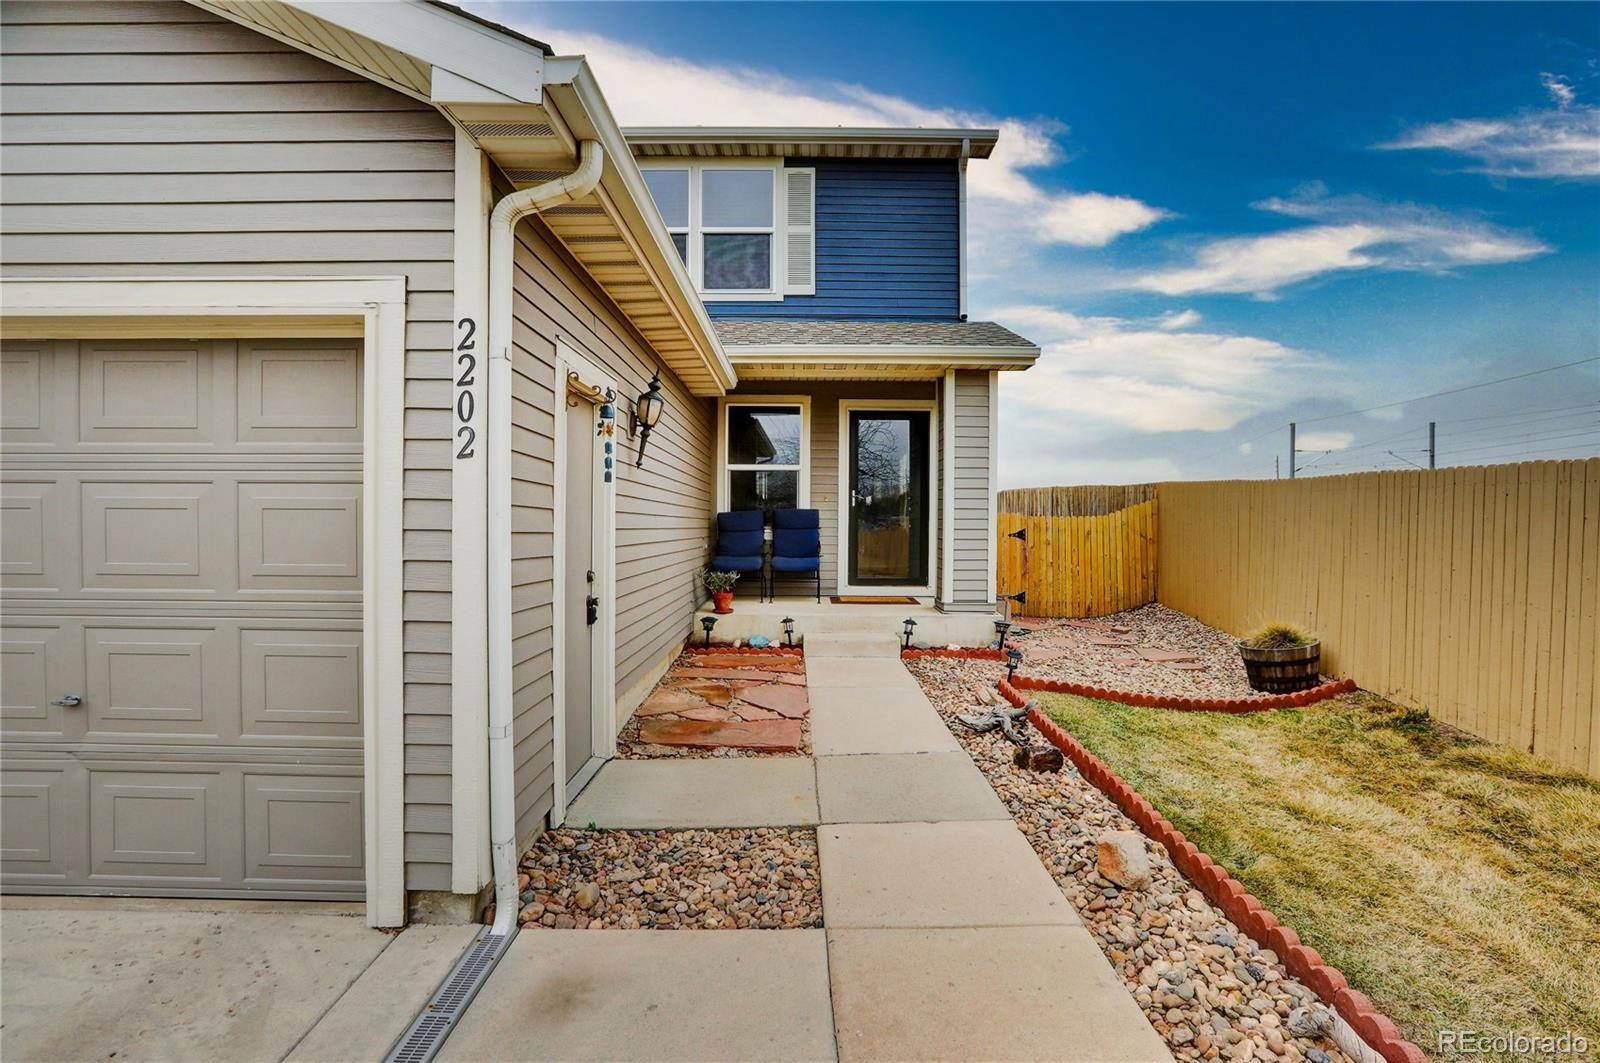 MLS# 7916174 - 3 - 2202 E 111th Drive, Northglenn, CO 80233